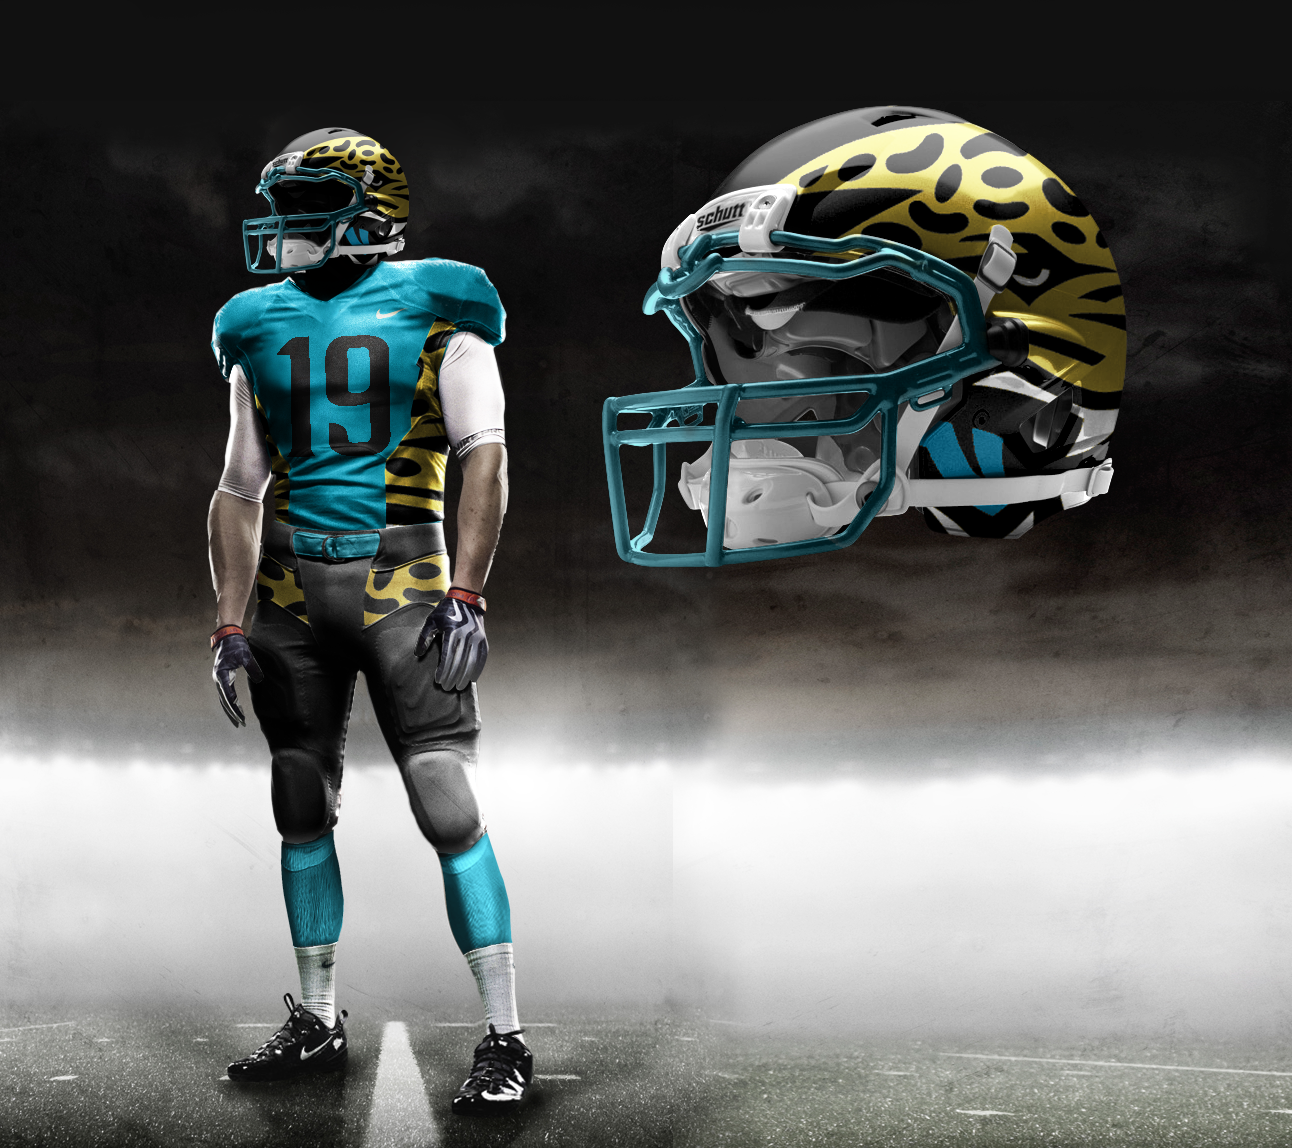 reputable site 62a92 15ea5 New Nike NFL Uniforms; Jacksonville Jaguars 2012 | Jaguars ...